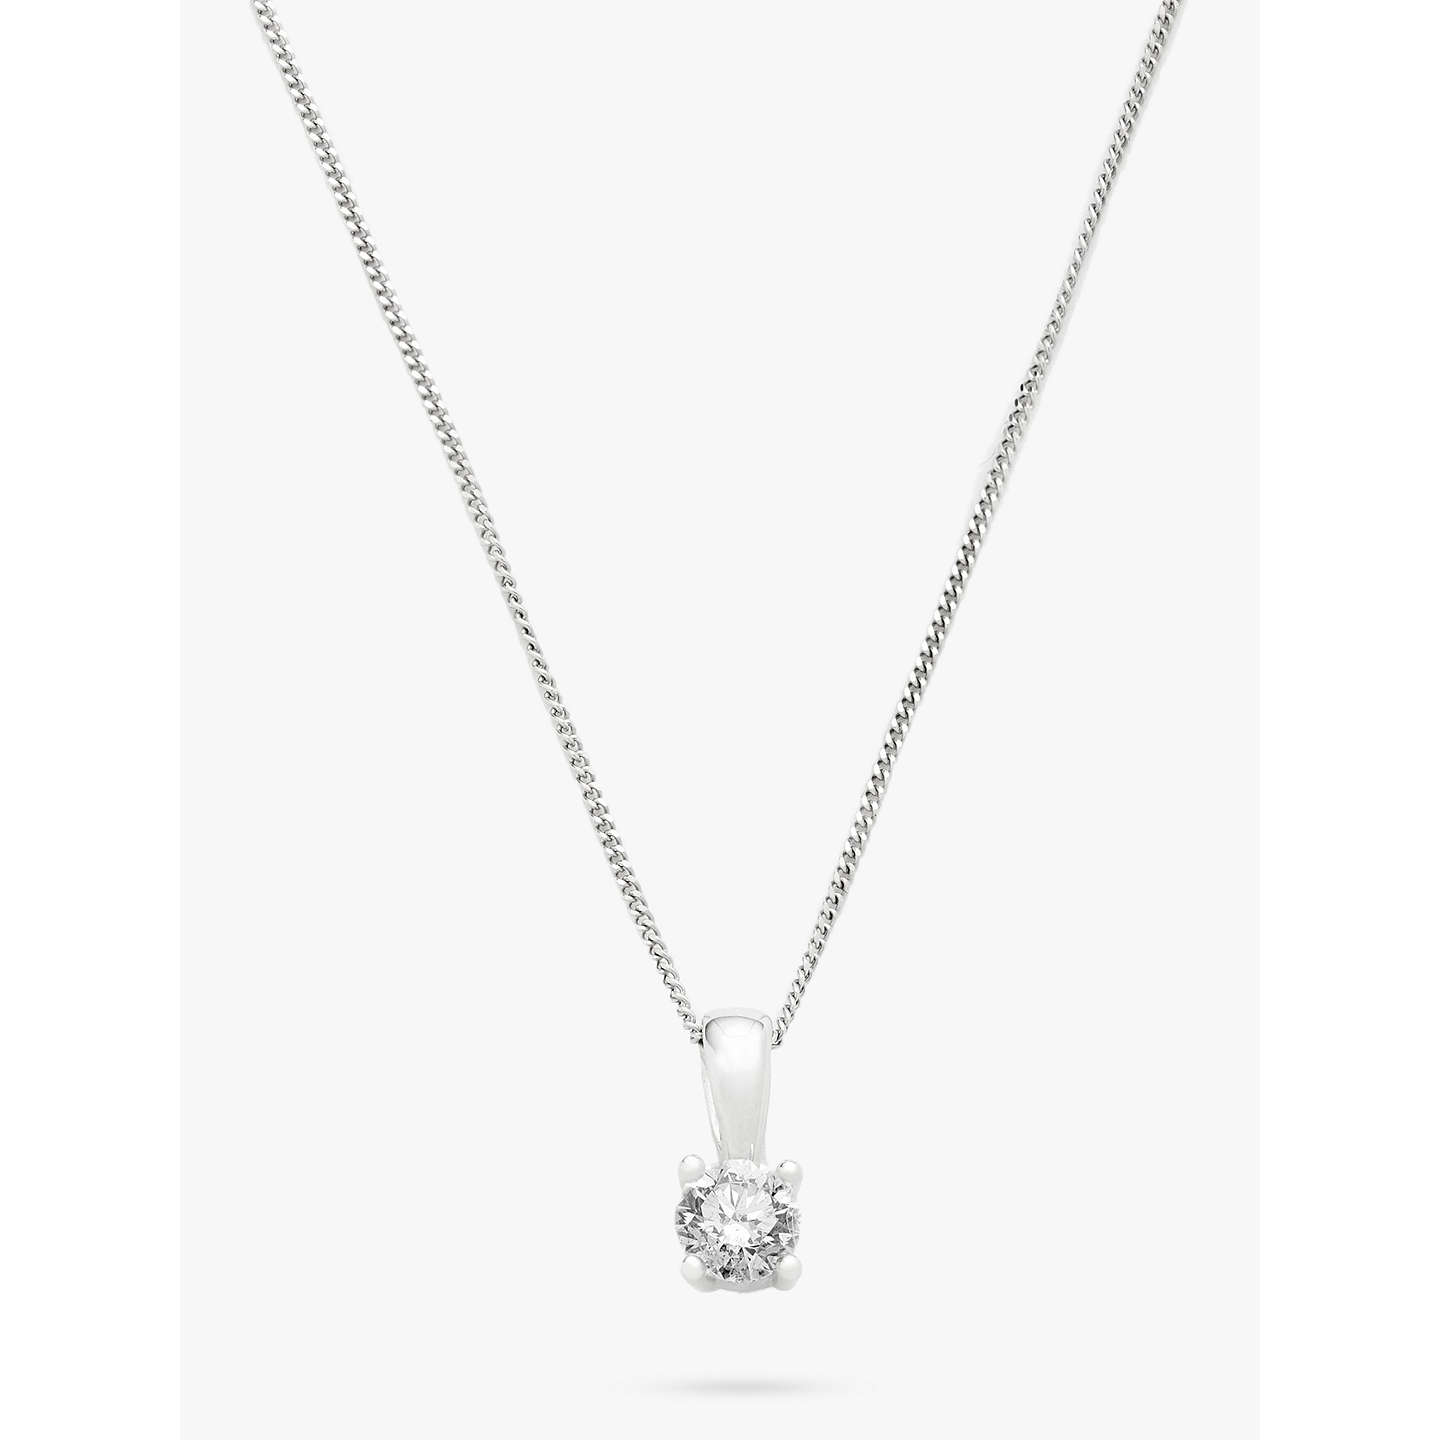 jewelry necklace wixon minnesota jewelers diamond pendant solitaire